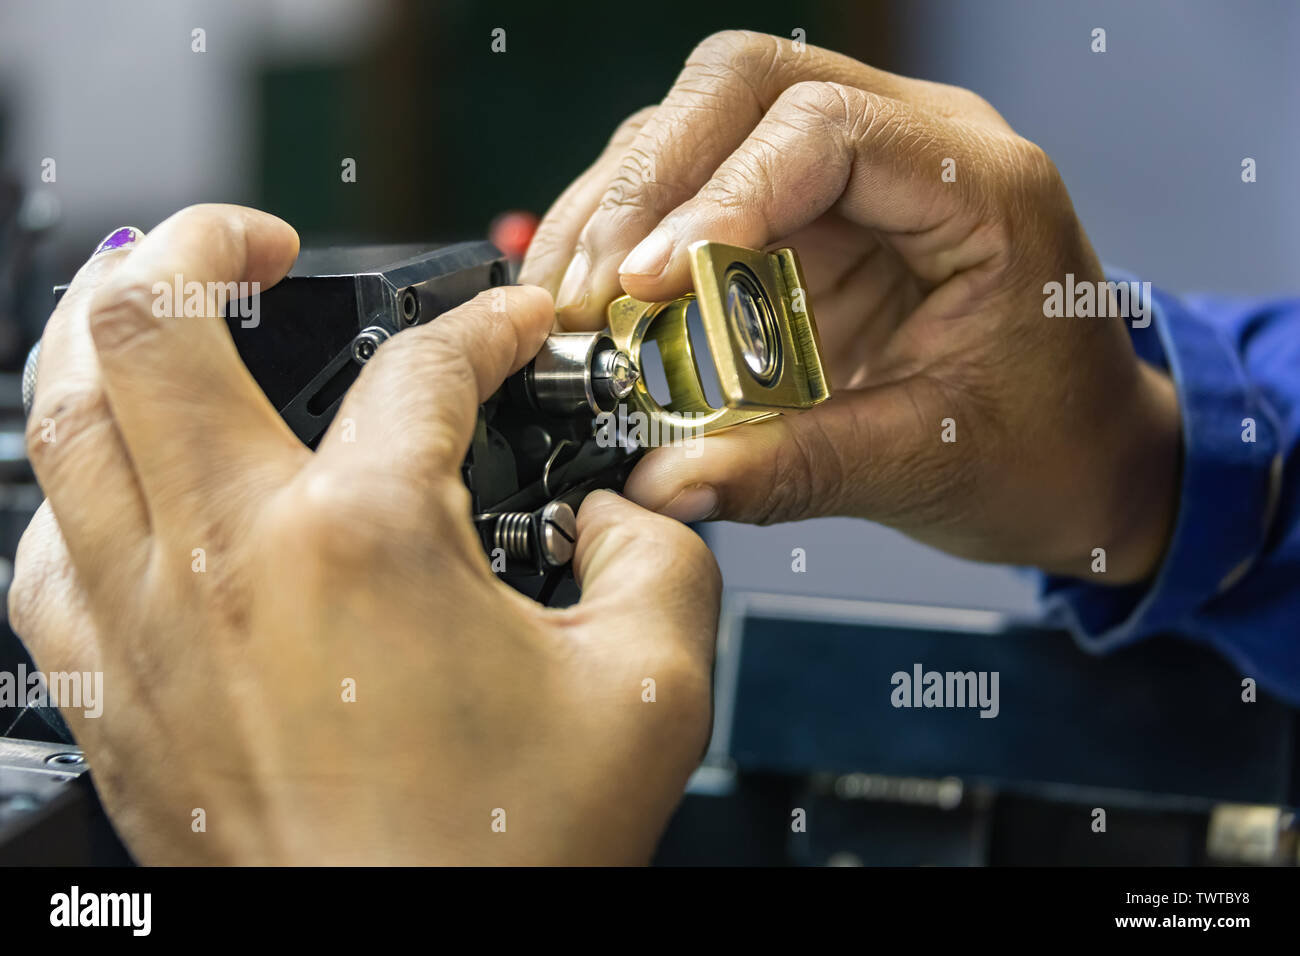 grading clarity on diamonds, microscope and magnifying glass, african woman working - Stock Image